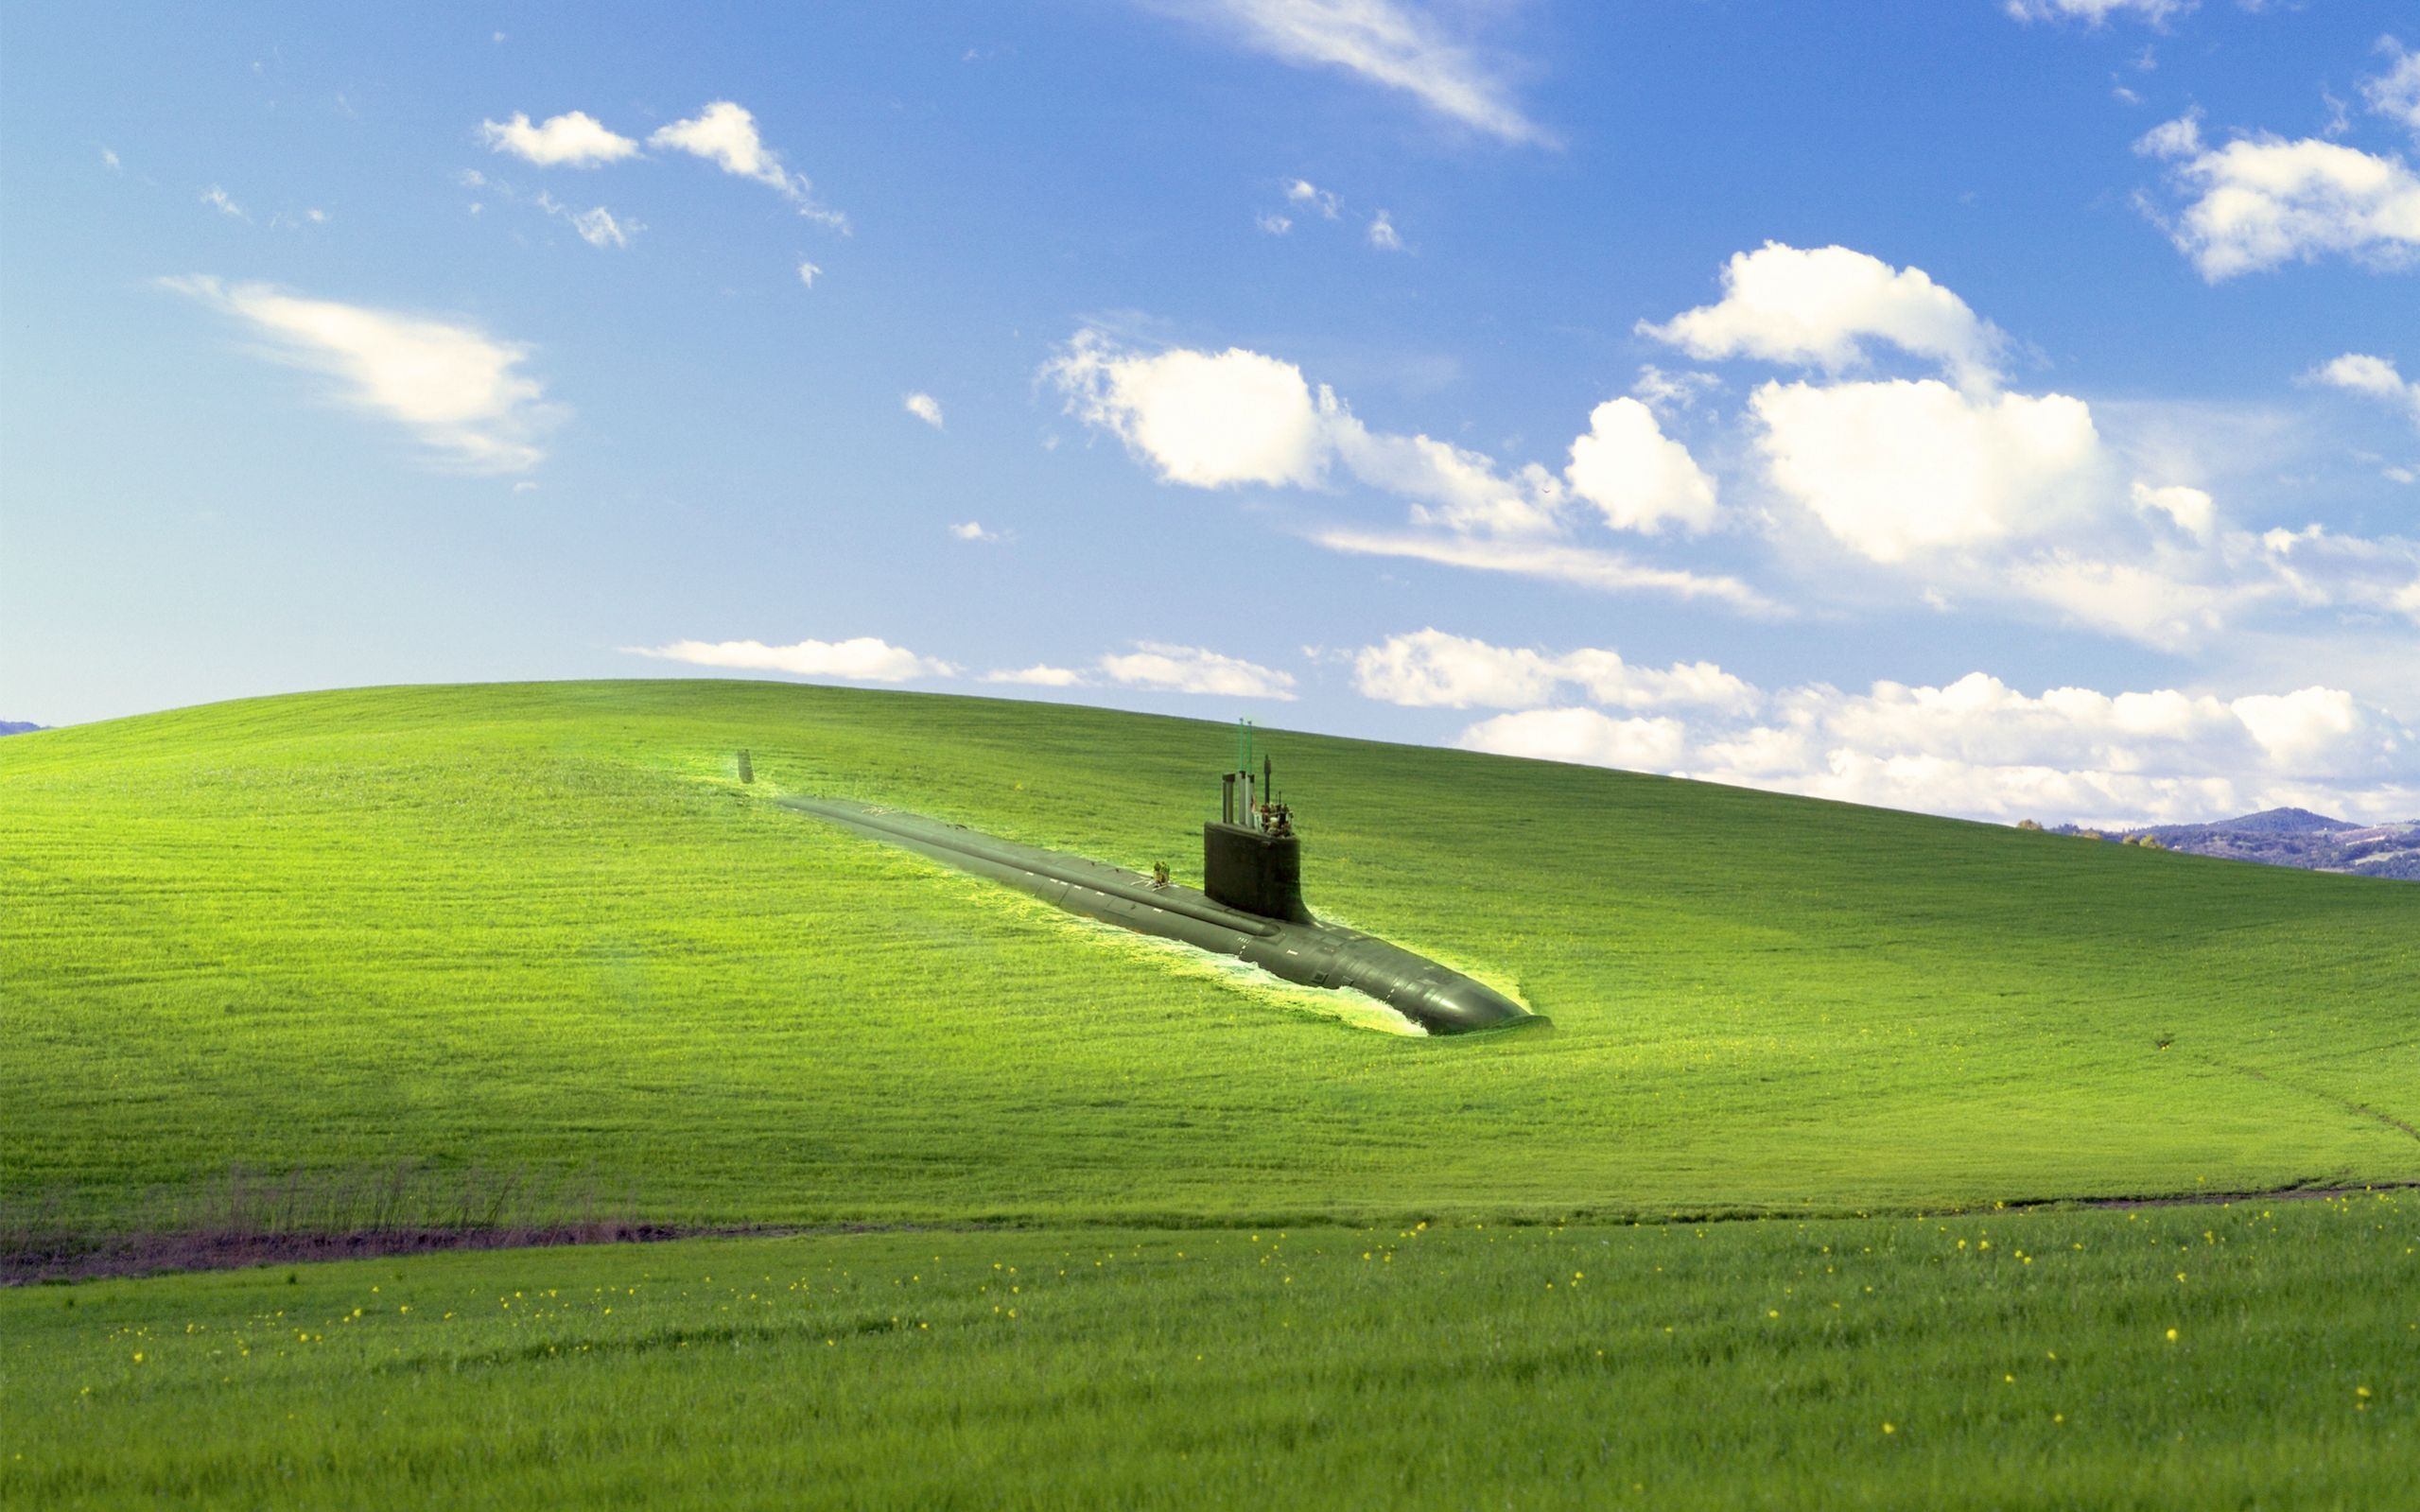 Windows Xp Wallpapers Top Free Windows Xp Backgrounds Wallpaperaccess